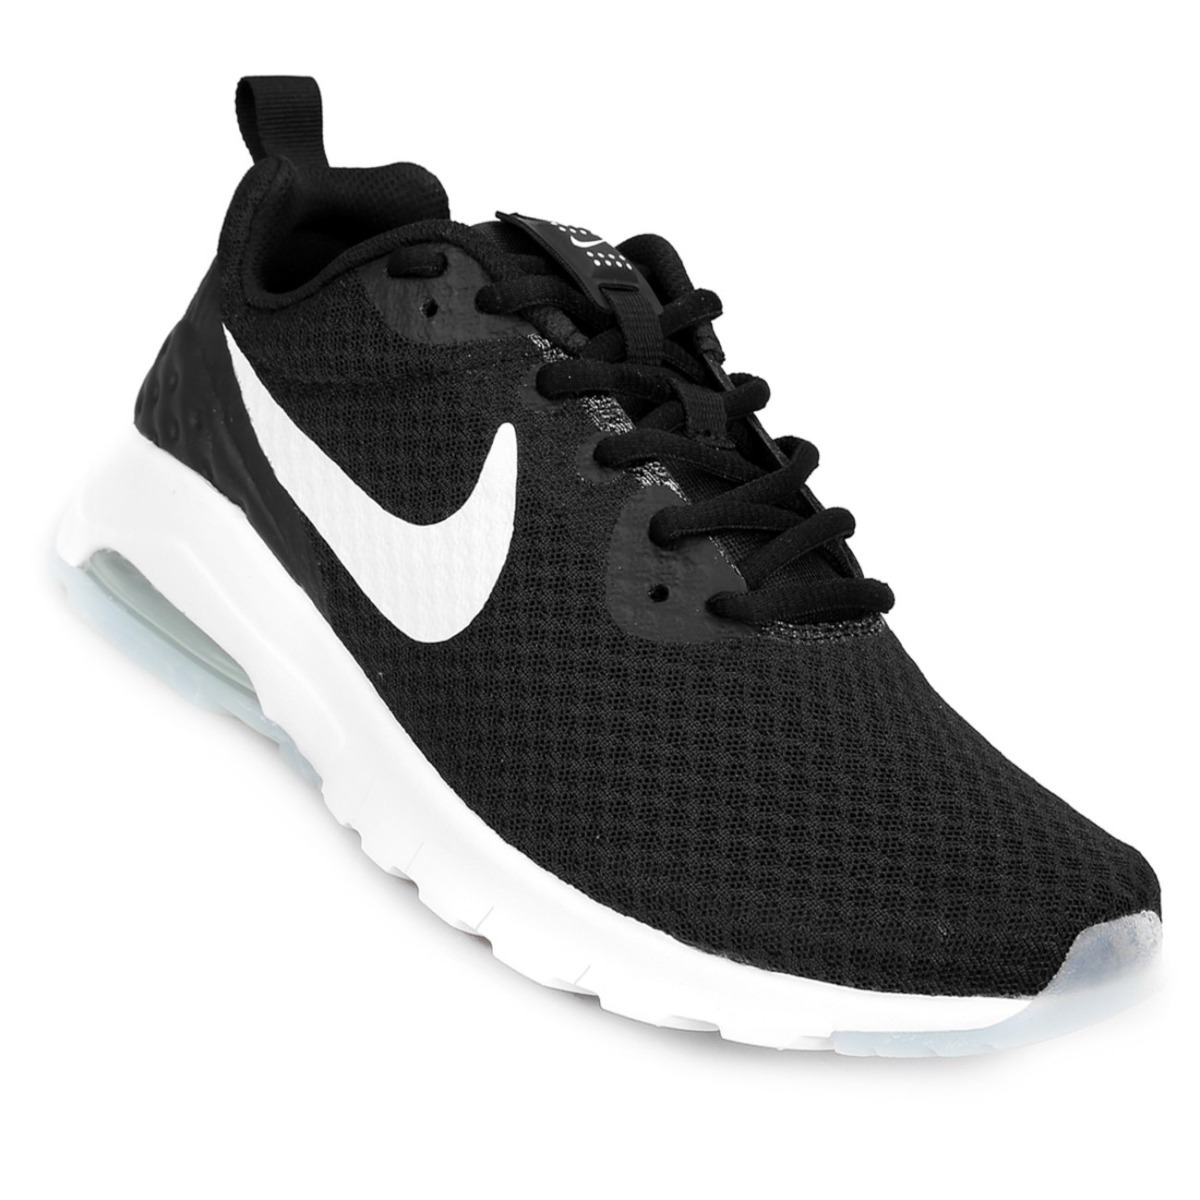 the best attitude 09d16 40342 ... sweden zapatillas nike air max motion lw mujer originales. cargando  zoom. 74780 3d497